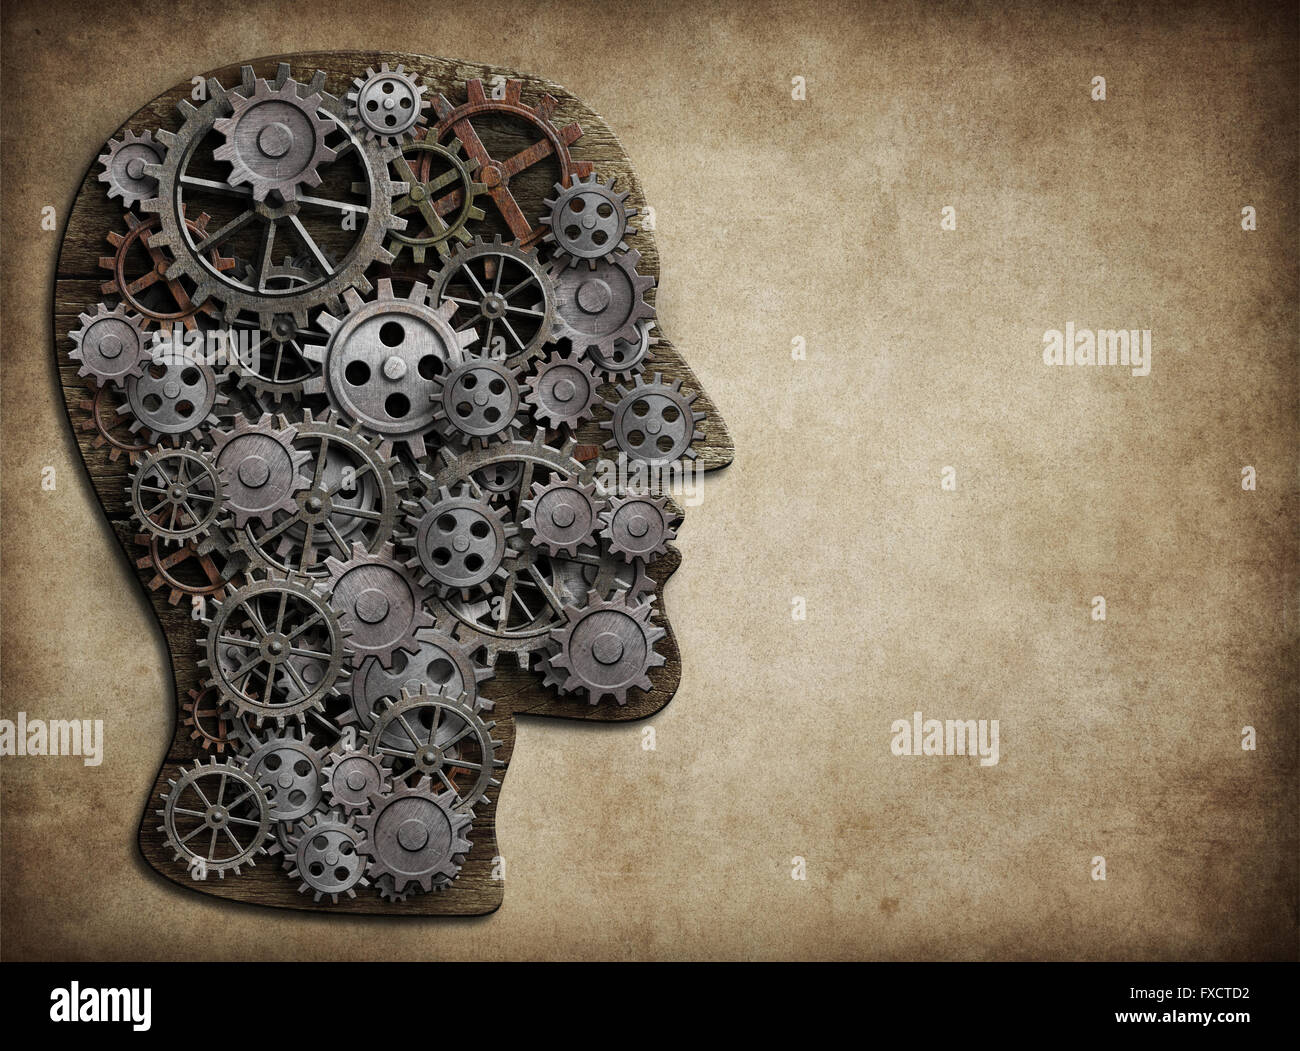 Head made from gears and cogs. Brain activity, idea concept. - Stock Image